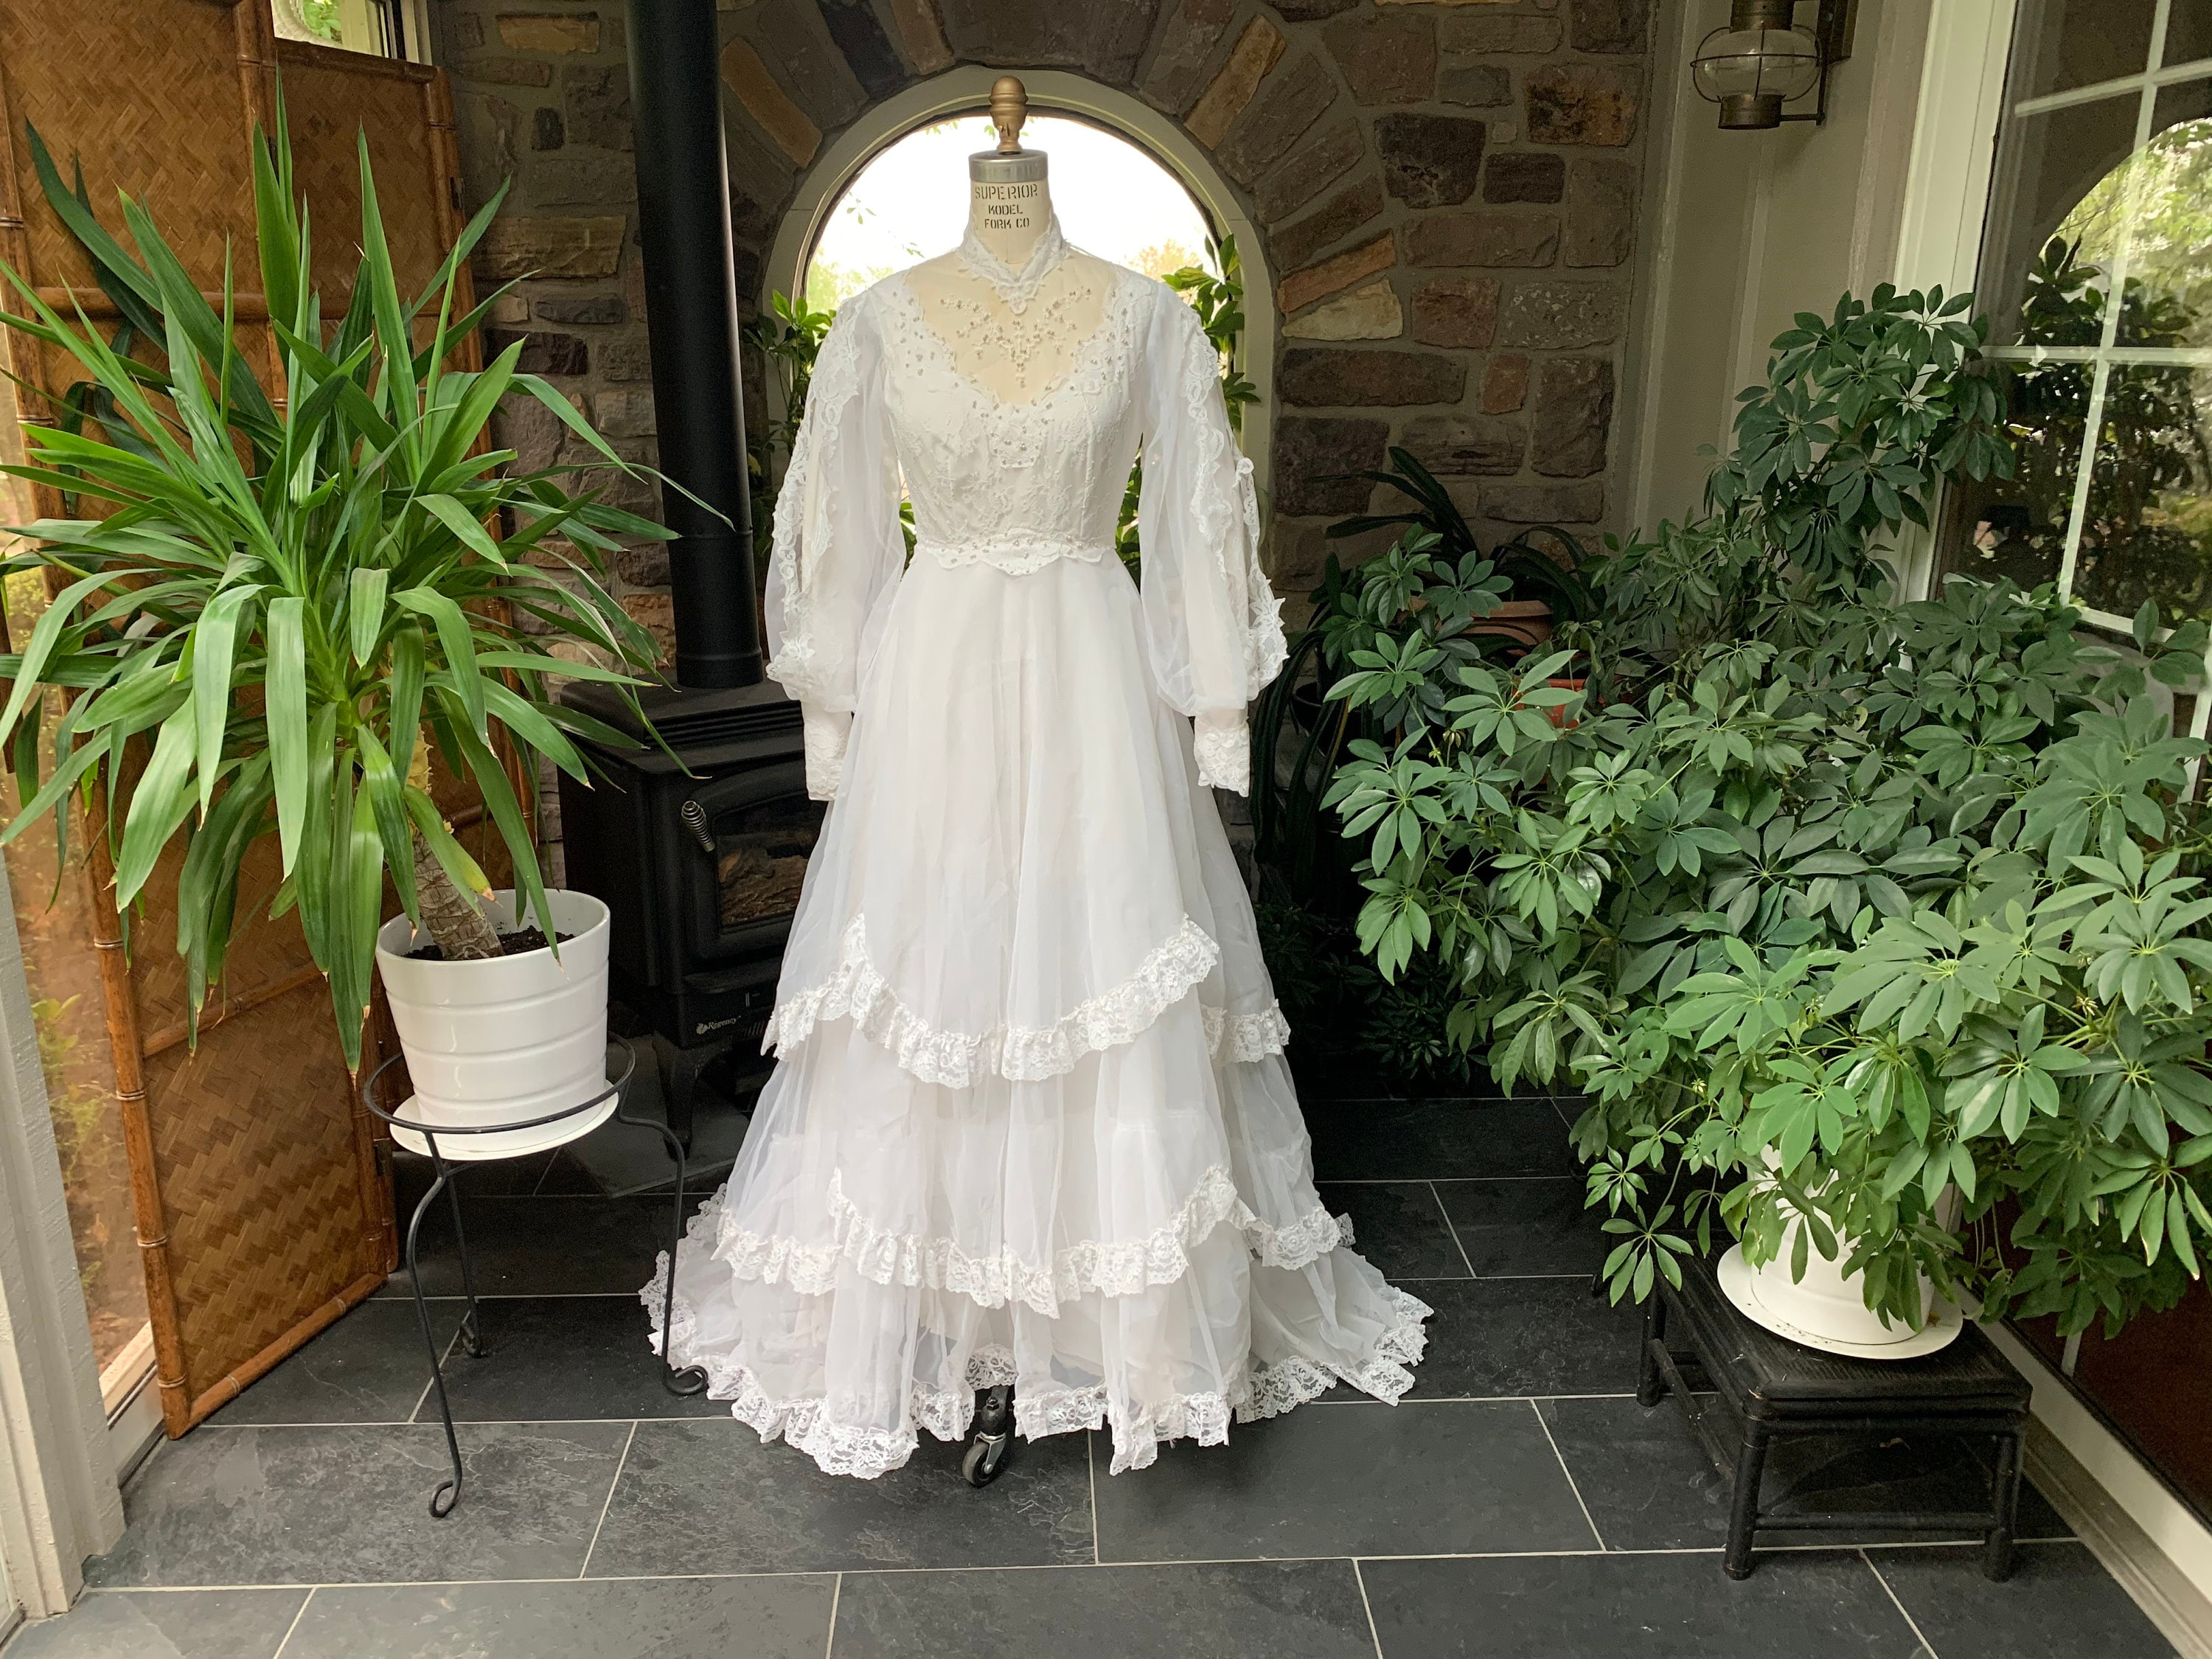 80s Dresses | Casual to Party Dresses Vintage 1980S White Nylon Chiffon  Lace Wedding Dress Scalloped Ruffled Skirt Train Matching Hat With Veil, Gown $265.00 AT vintagedancer.com